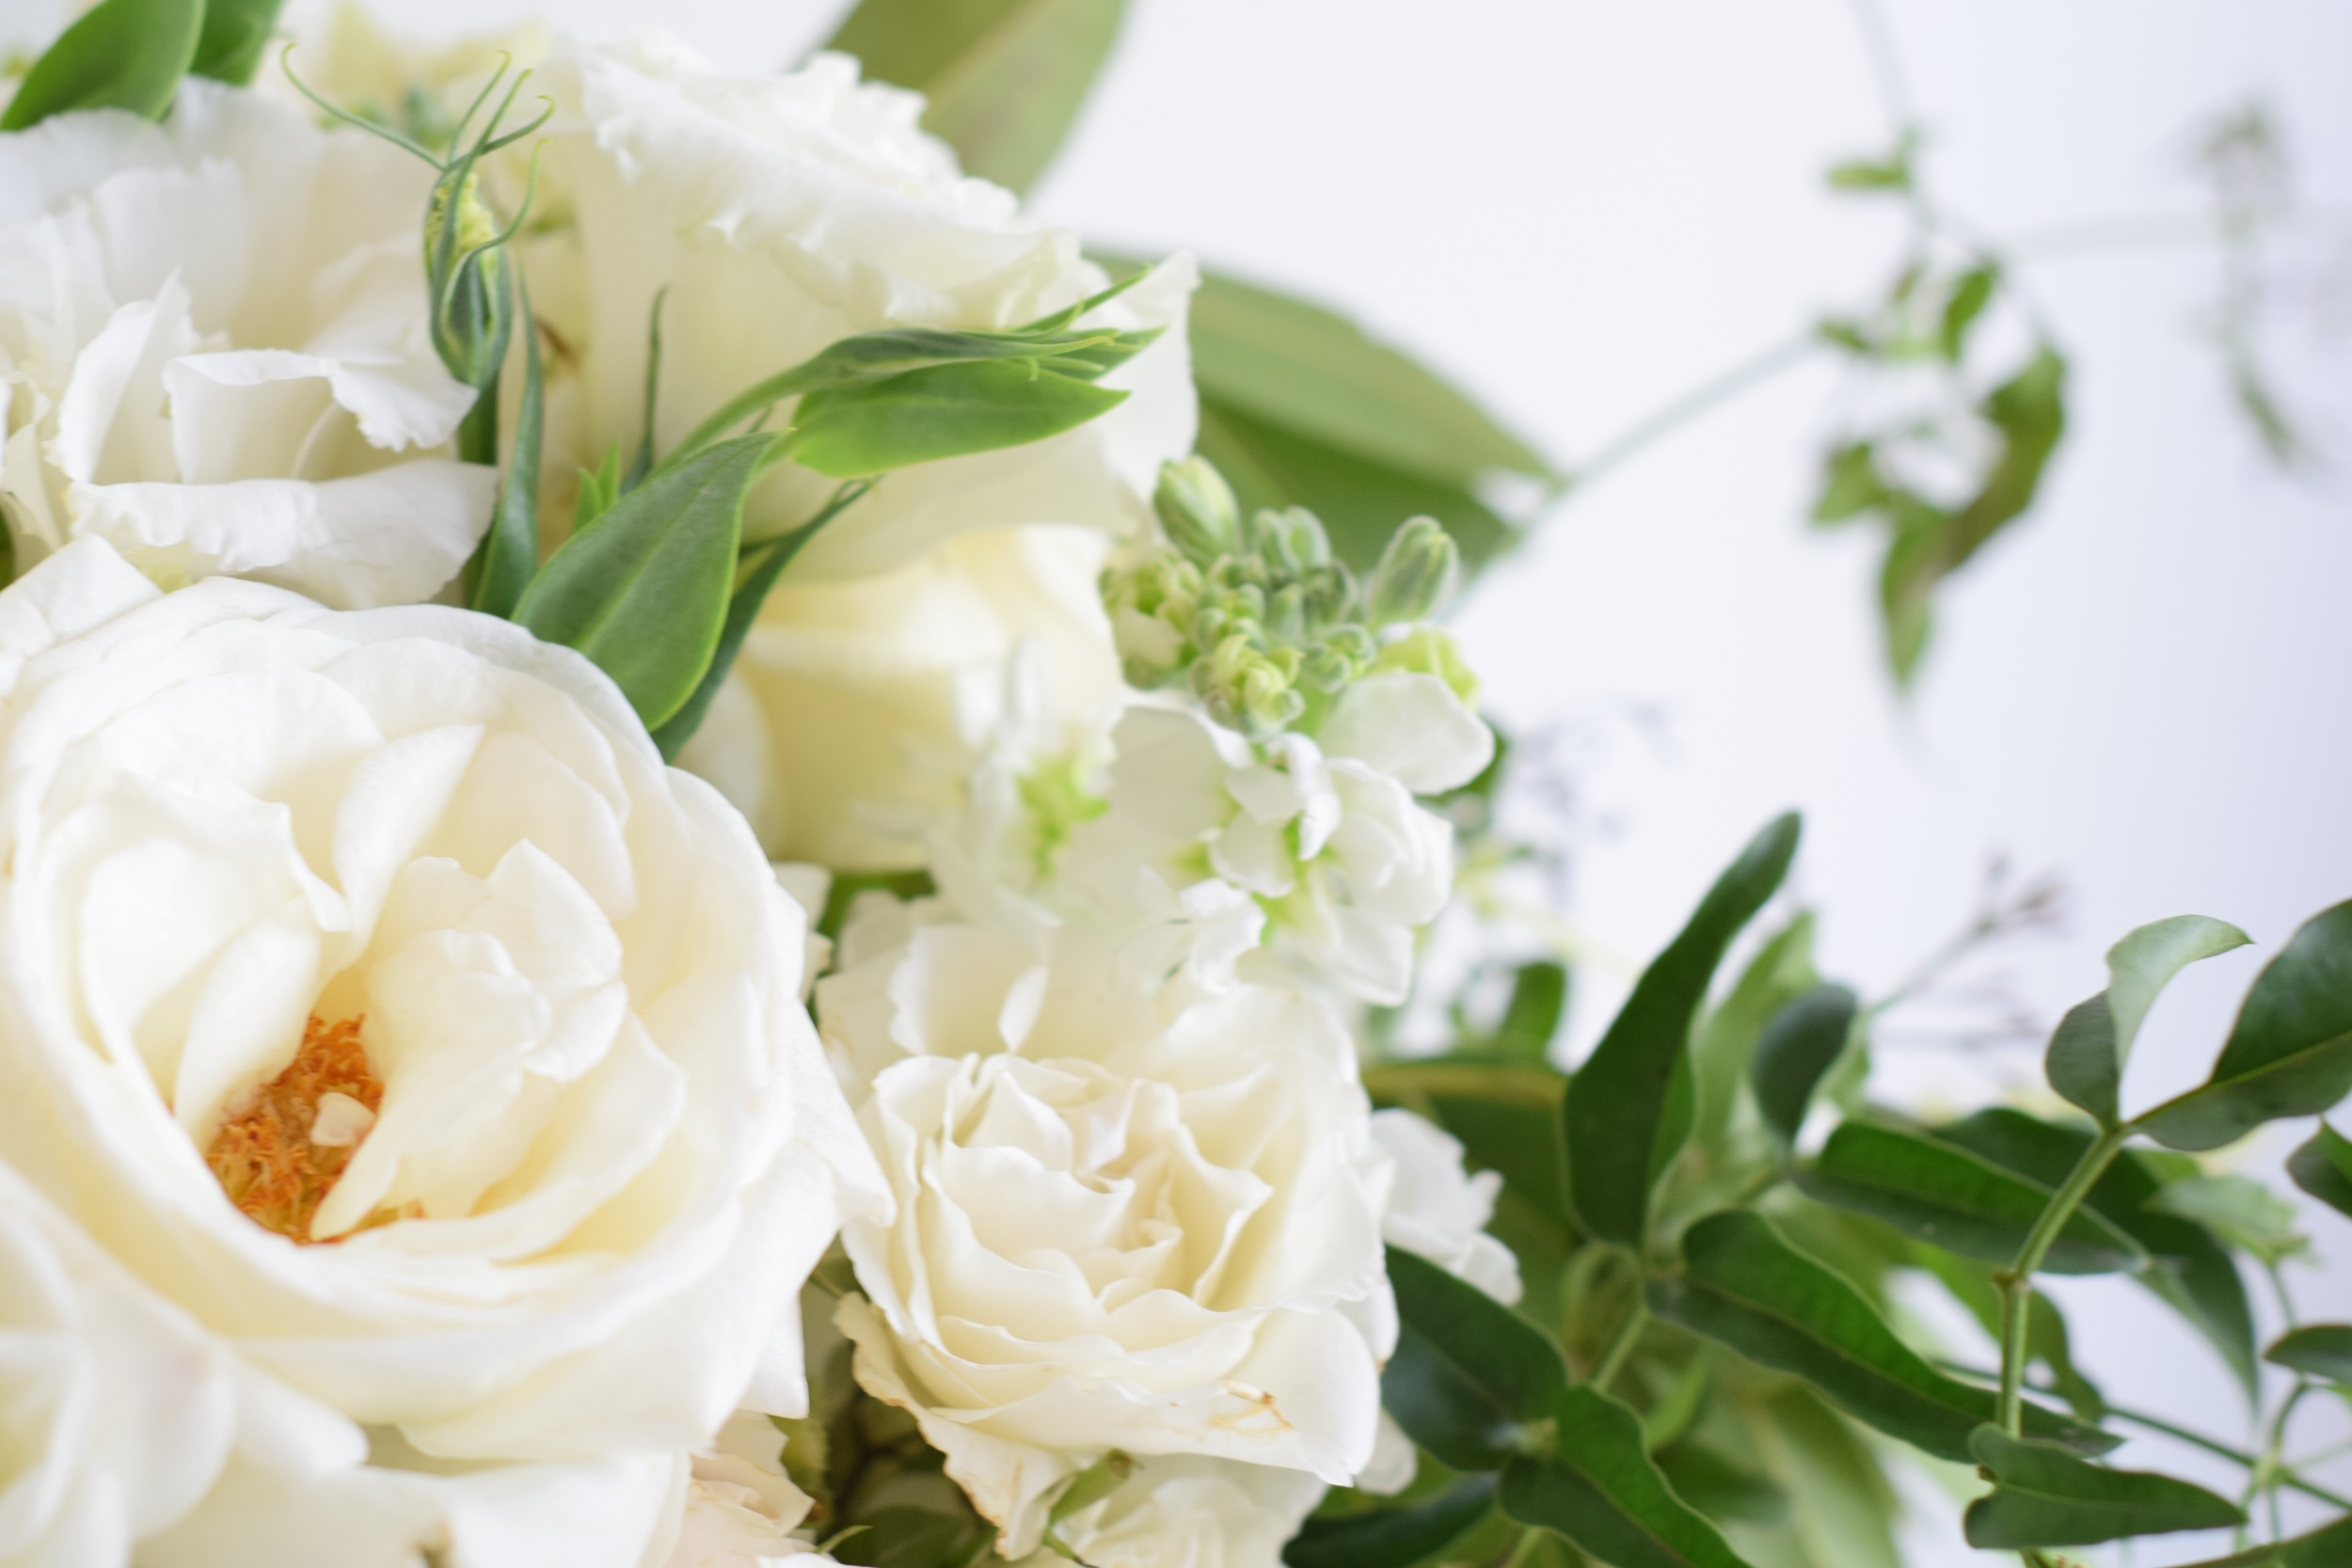 Up close & personal with an all white bouquet by Maxit Flower Design.